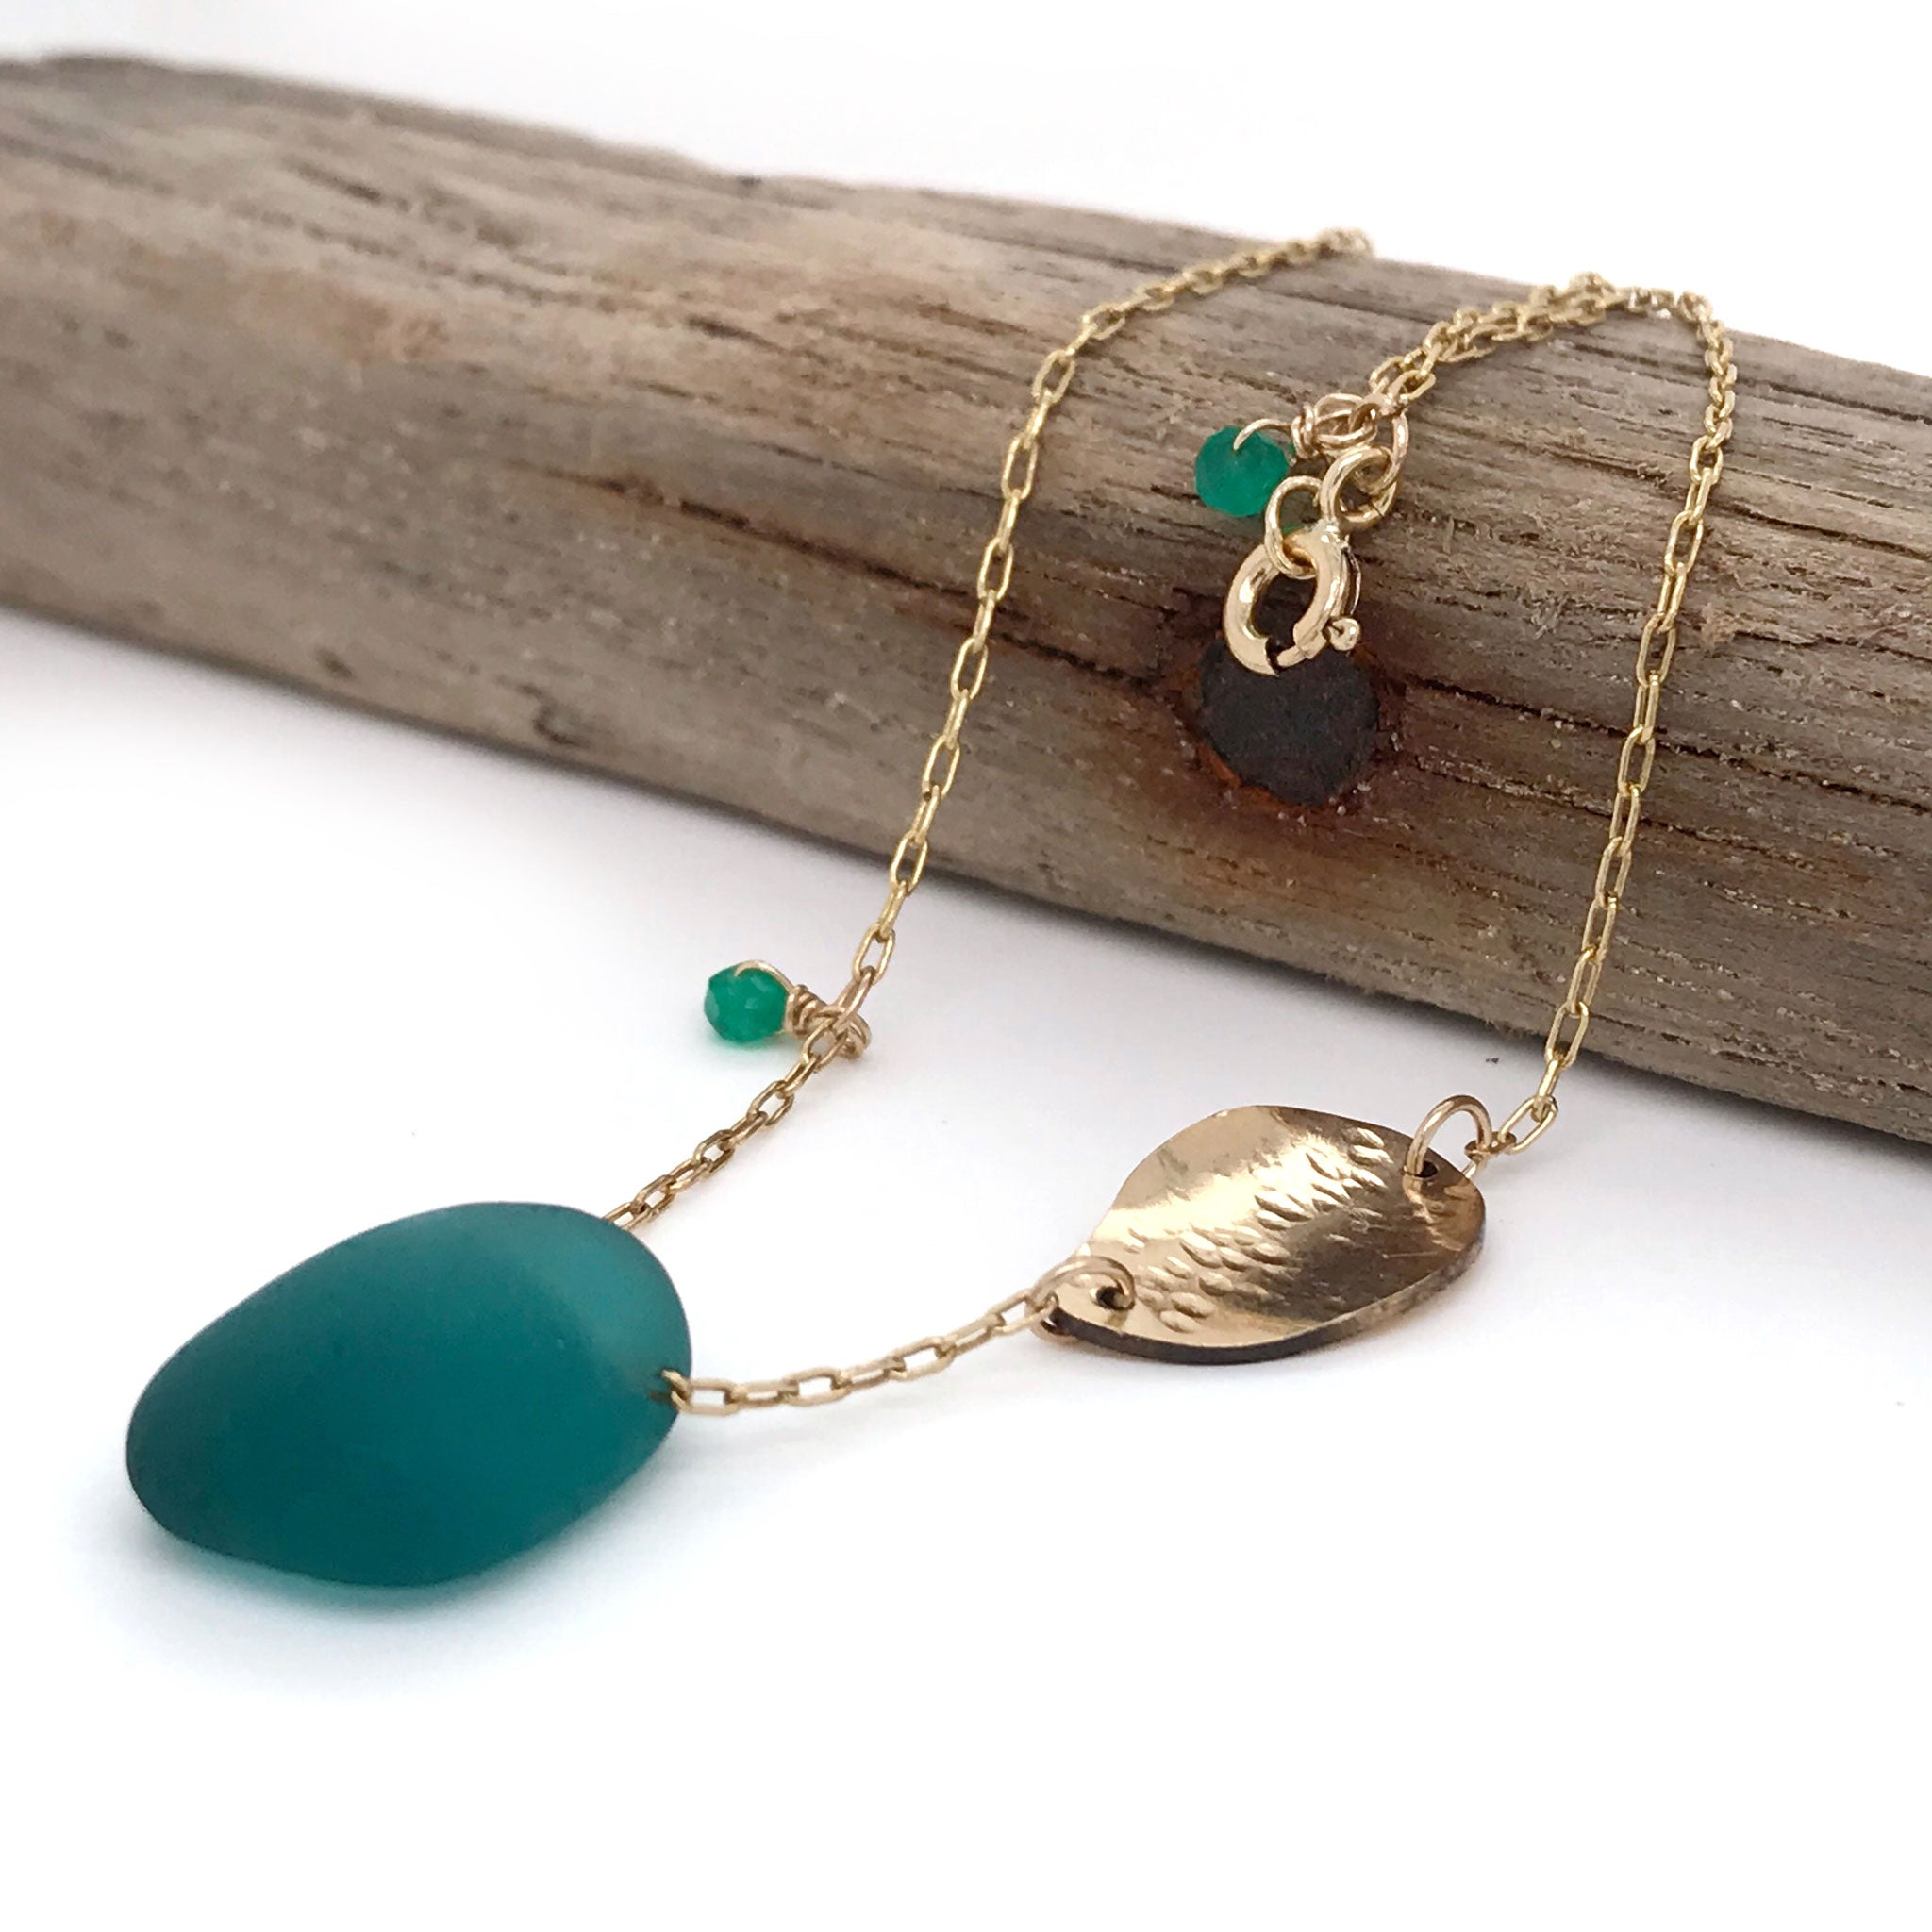 teal green beach glass necklace with gold leaf charm Kriket Broadhurst jewellery